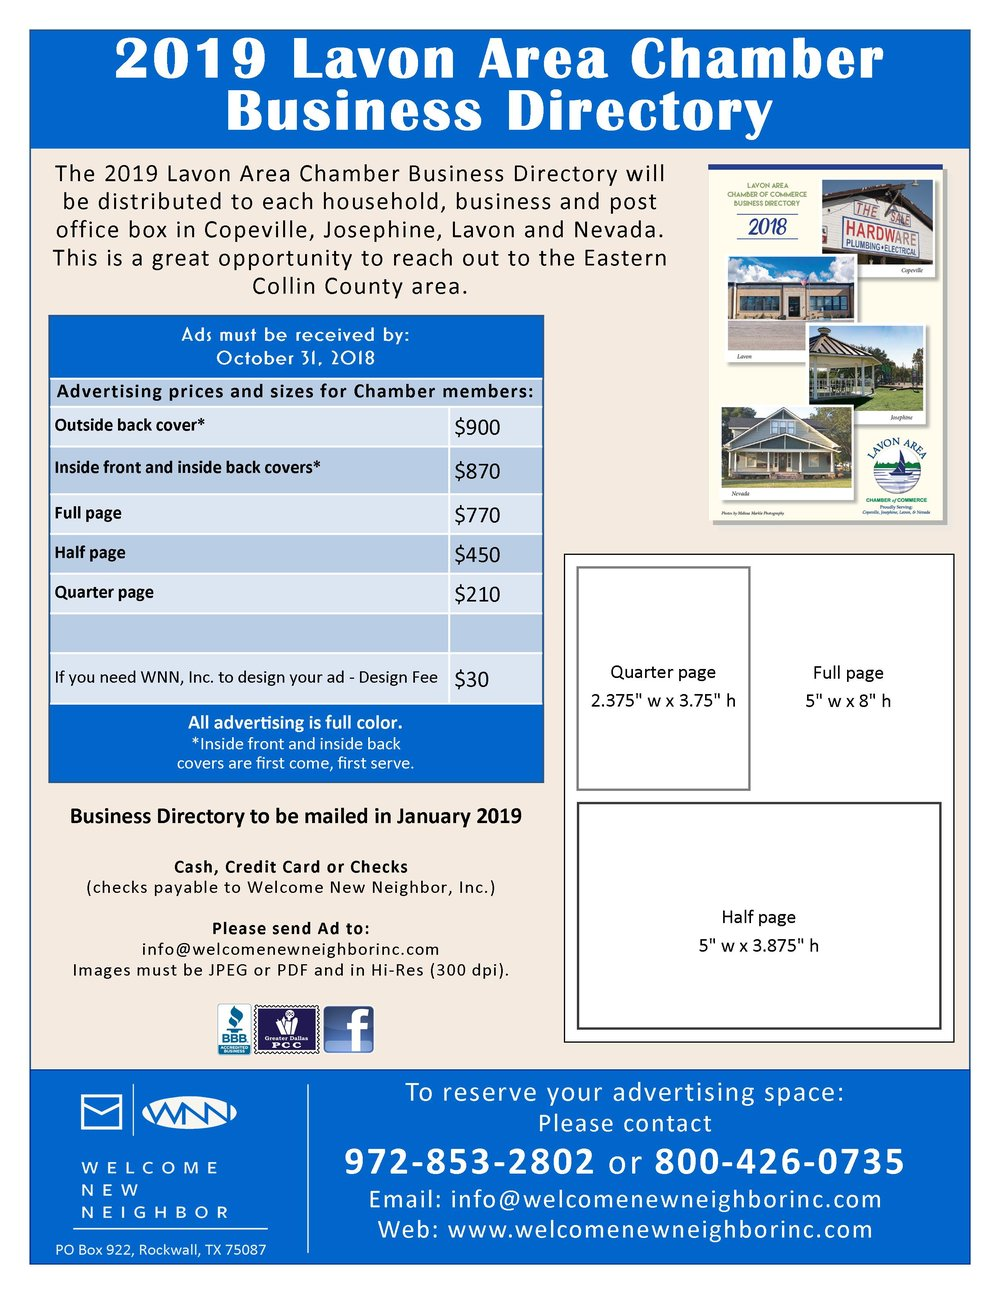 2019 Lavon Chamber Business Directory.jpg